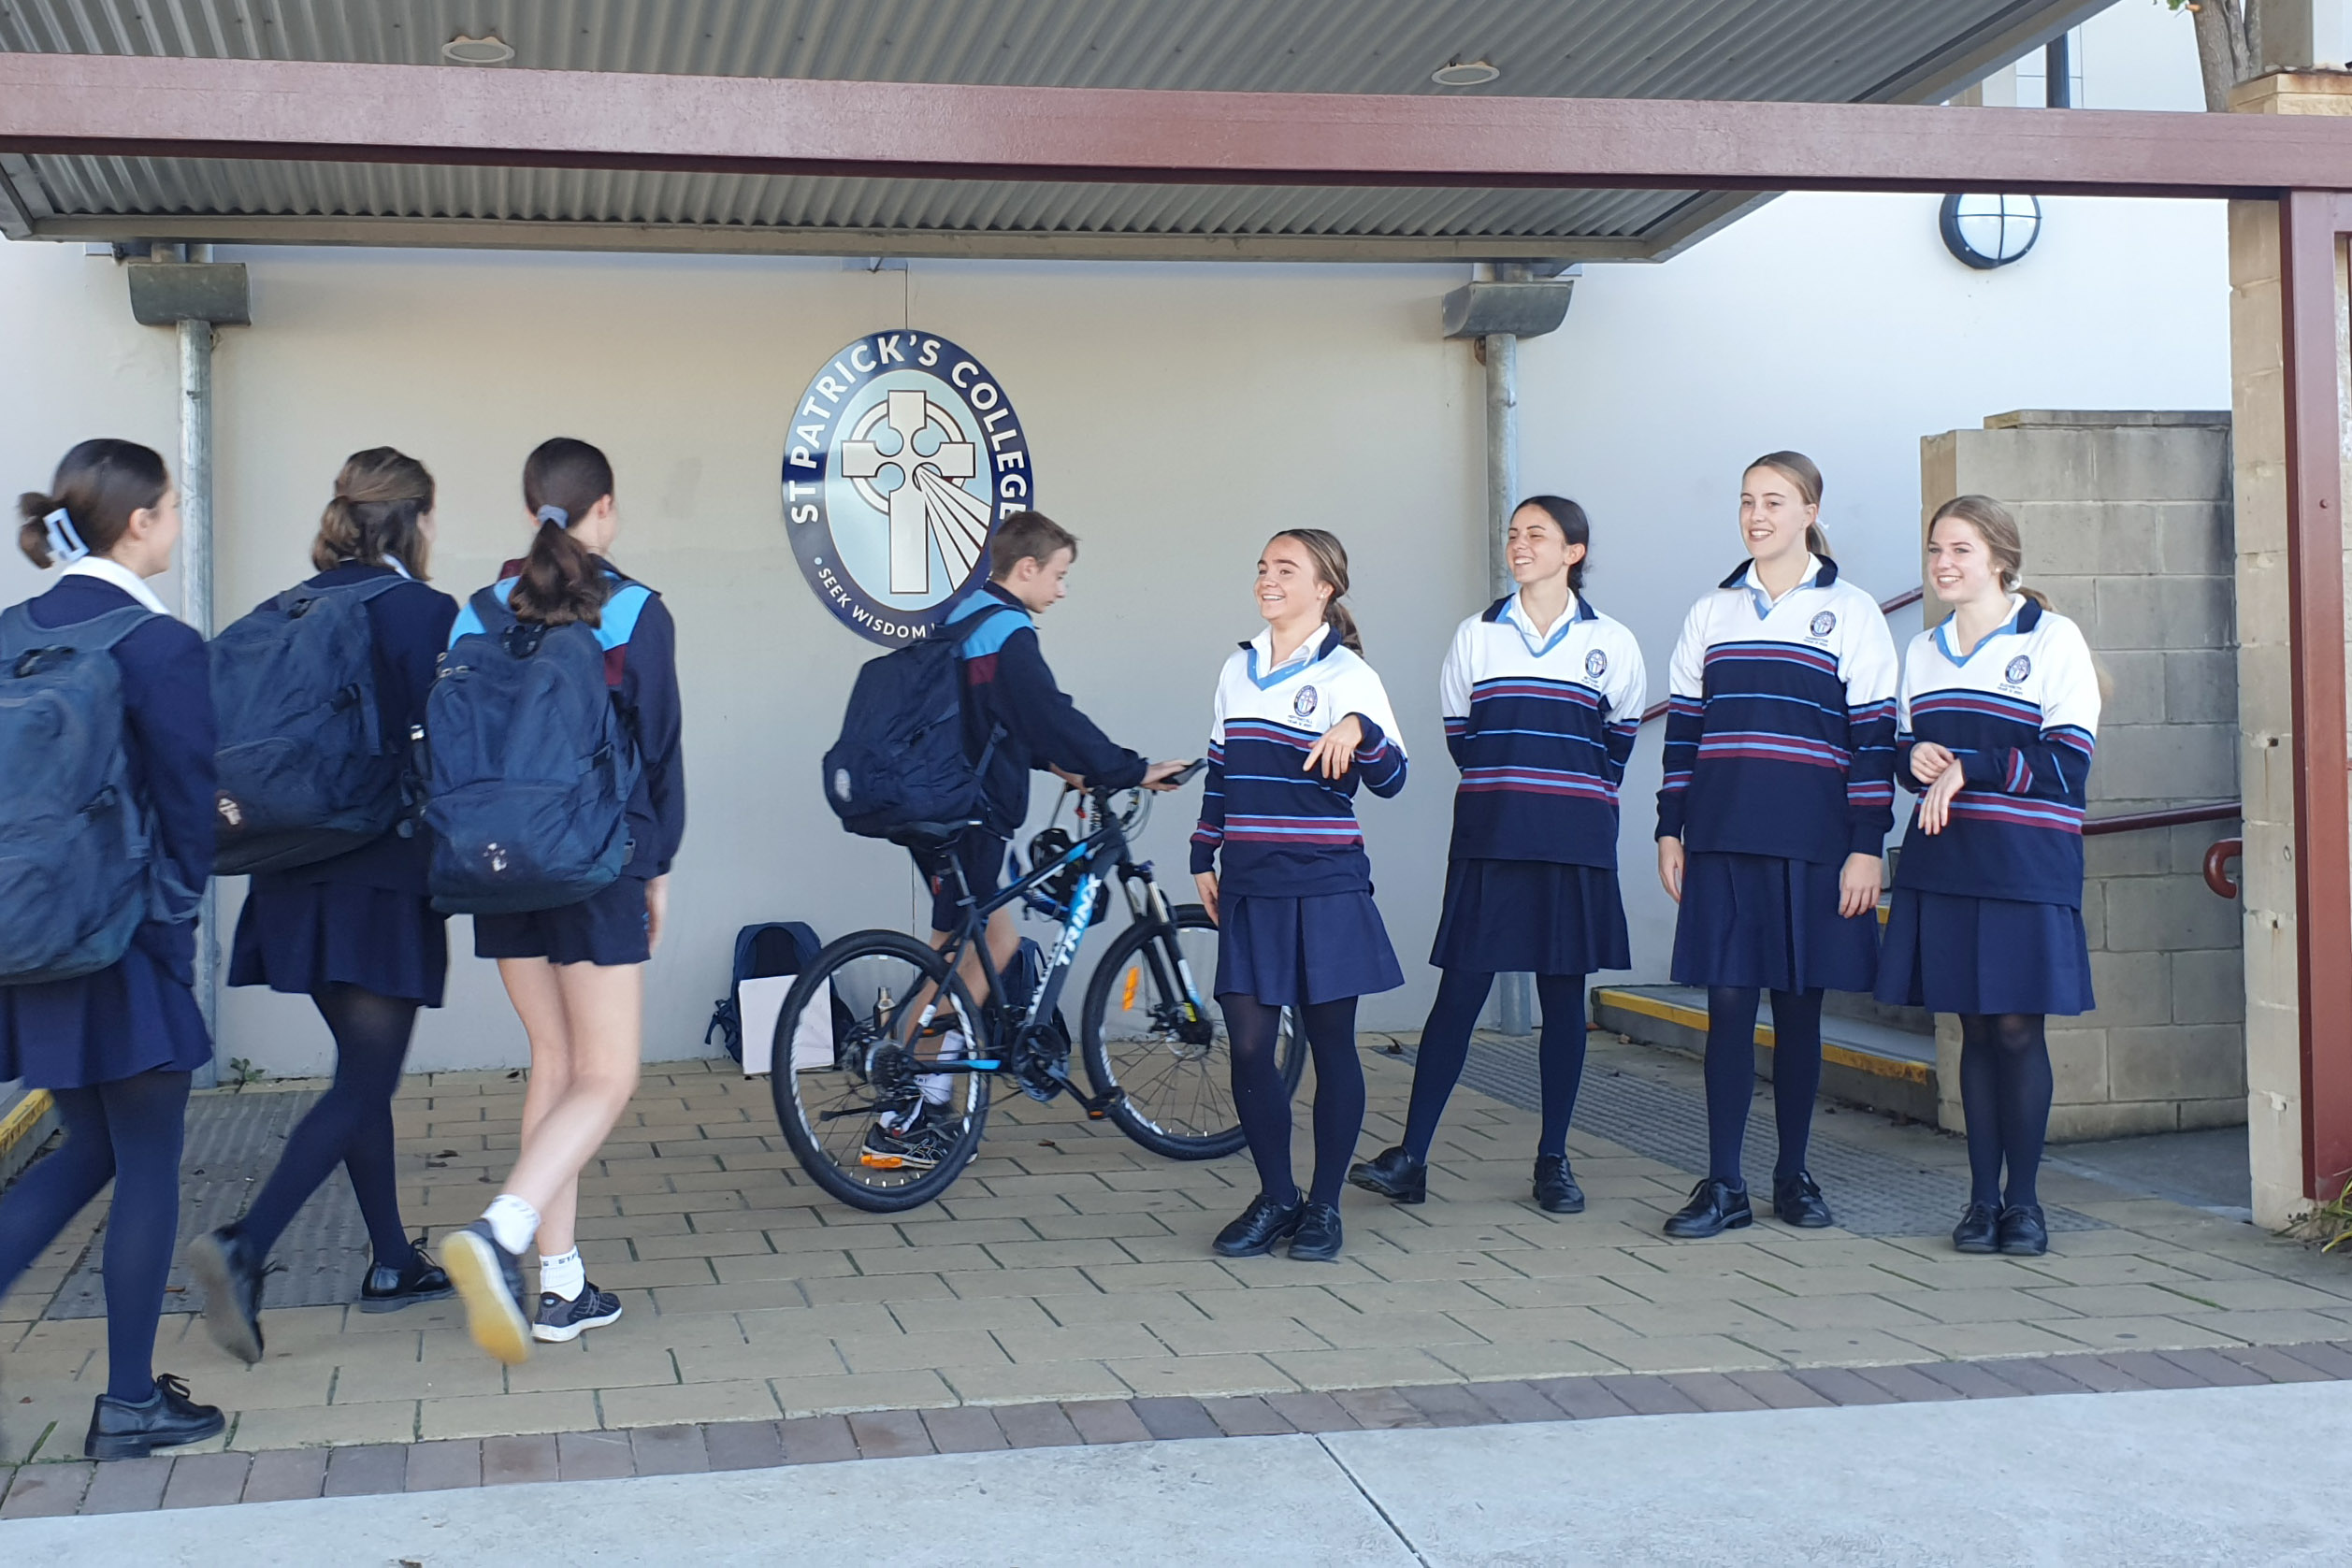 St Patrick's College students are greeted by their student leaders at the school gate on Feel Good Fridays